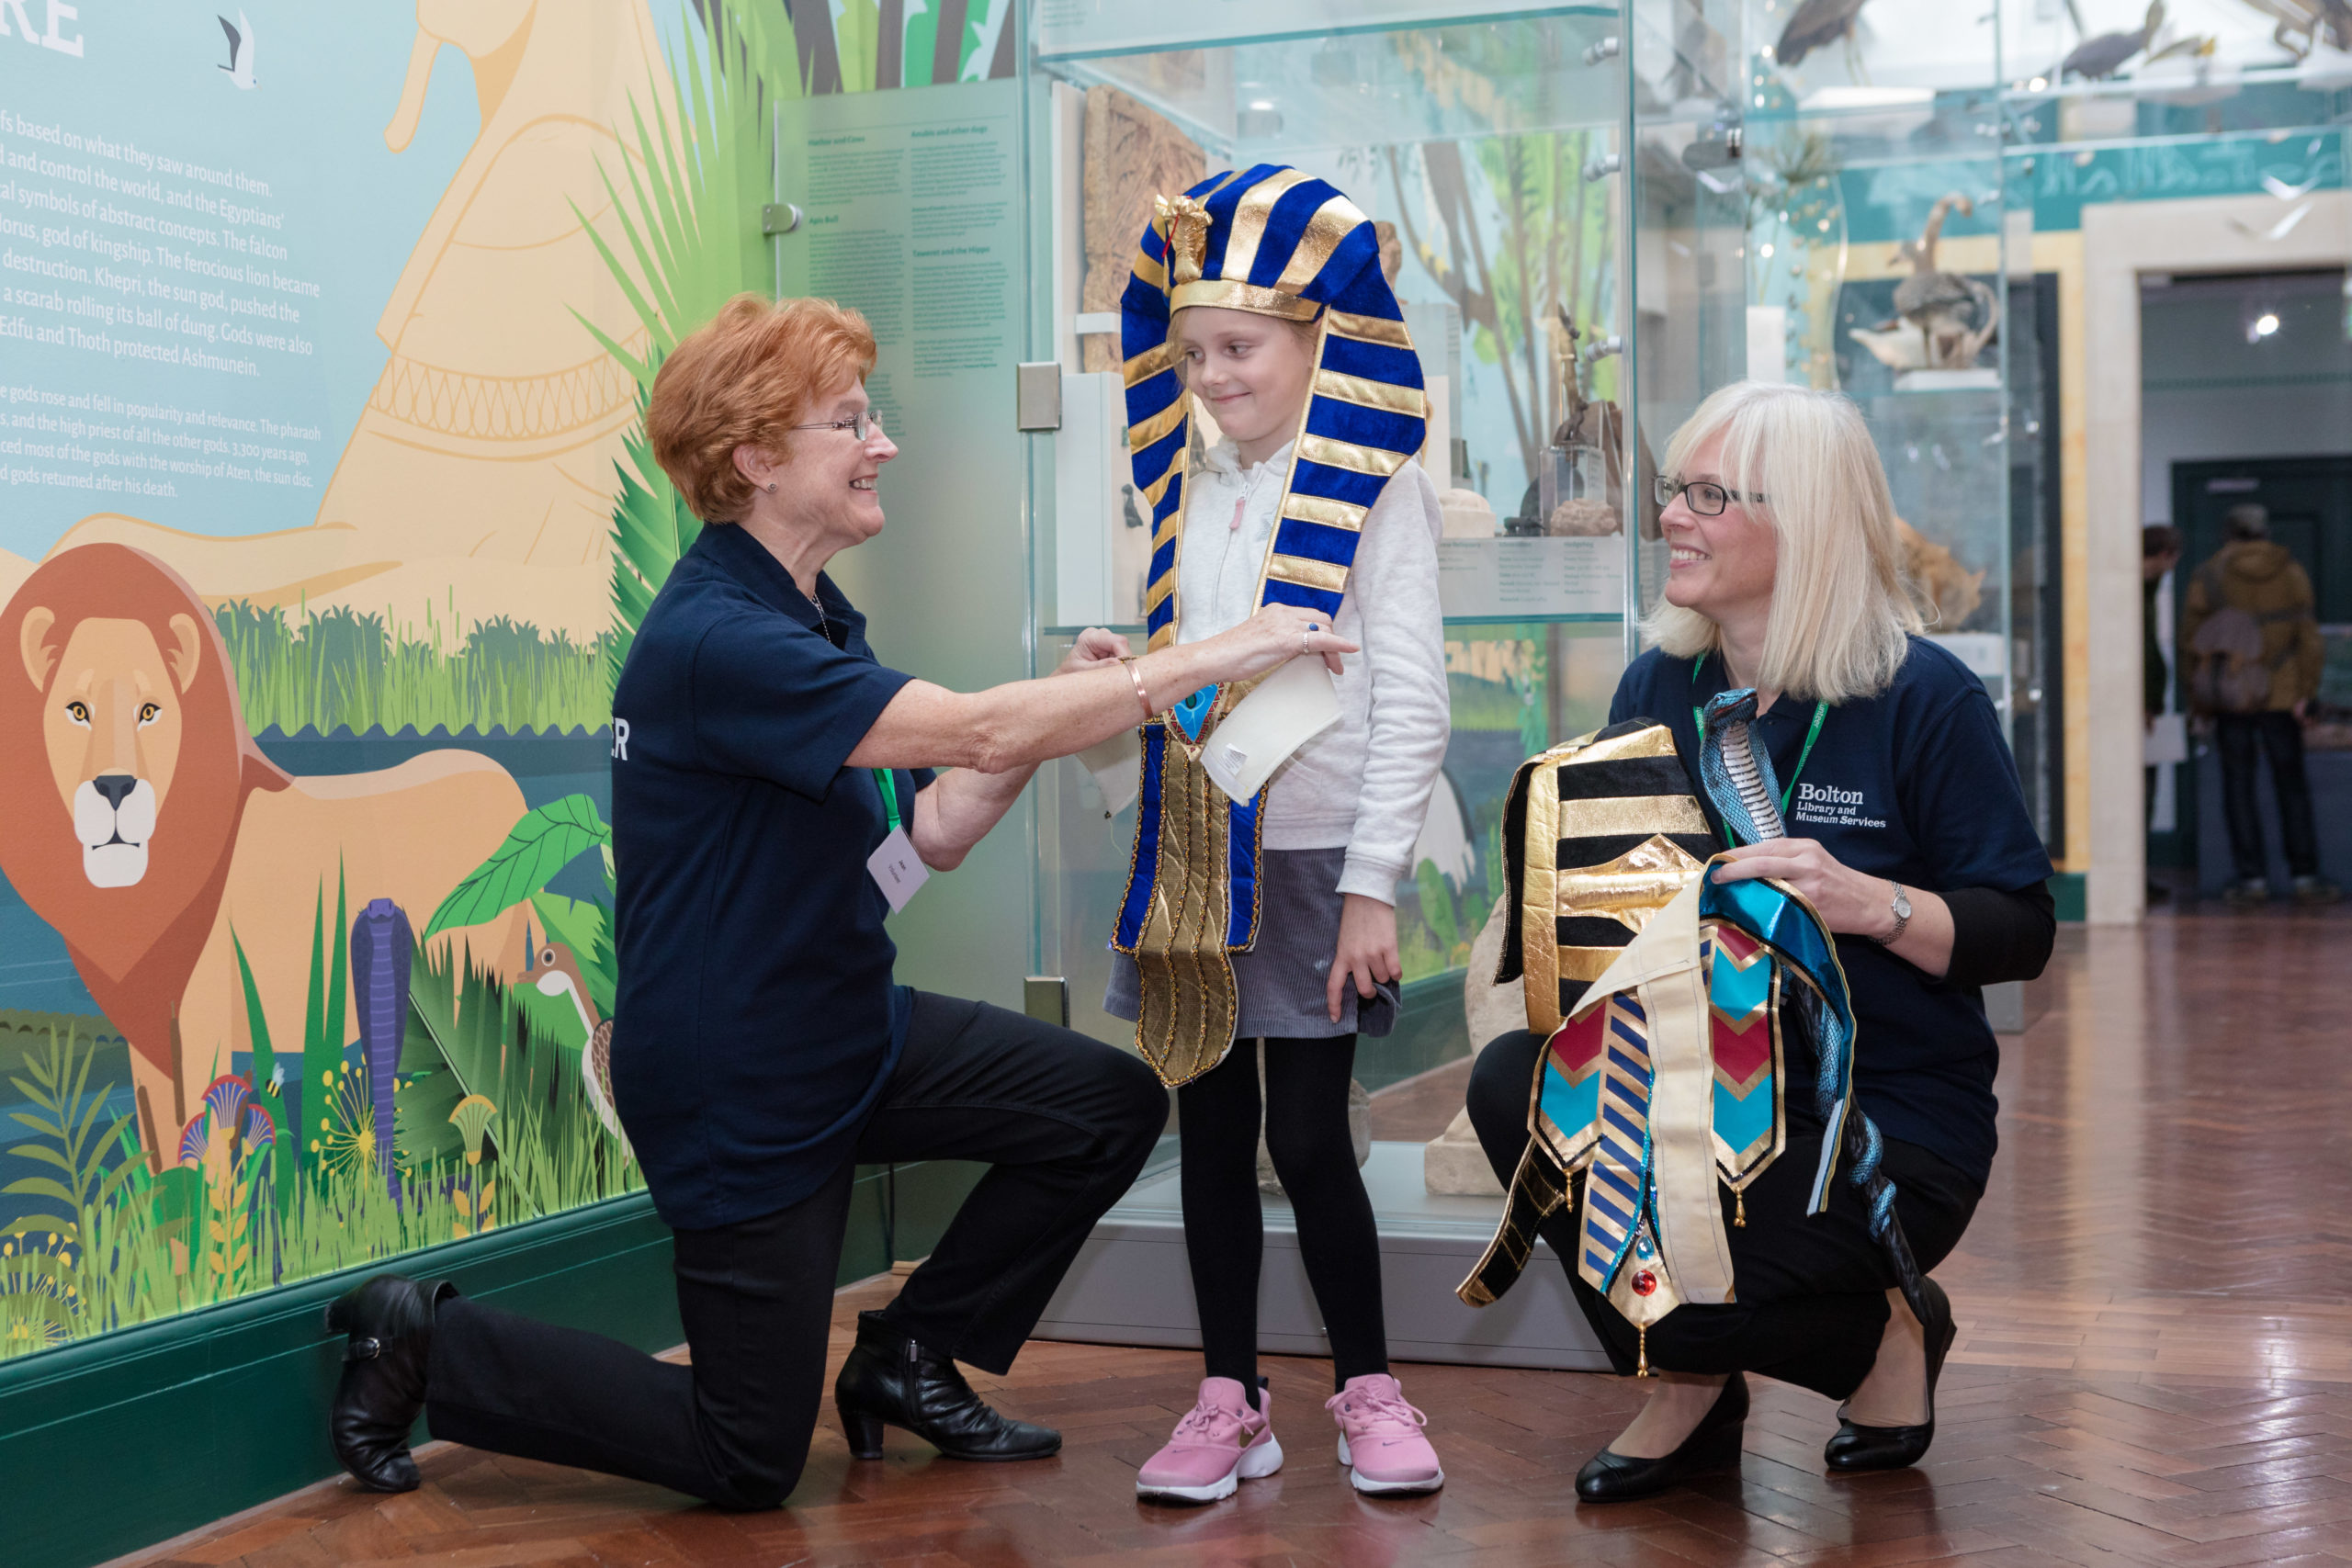 Two women kneeling help dress a young girl standing up in Ancient Egyptian costume in a gallery at Bolton Museum.